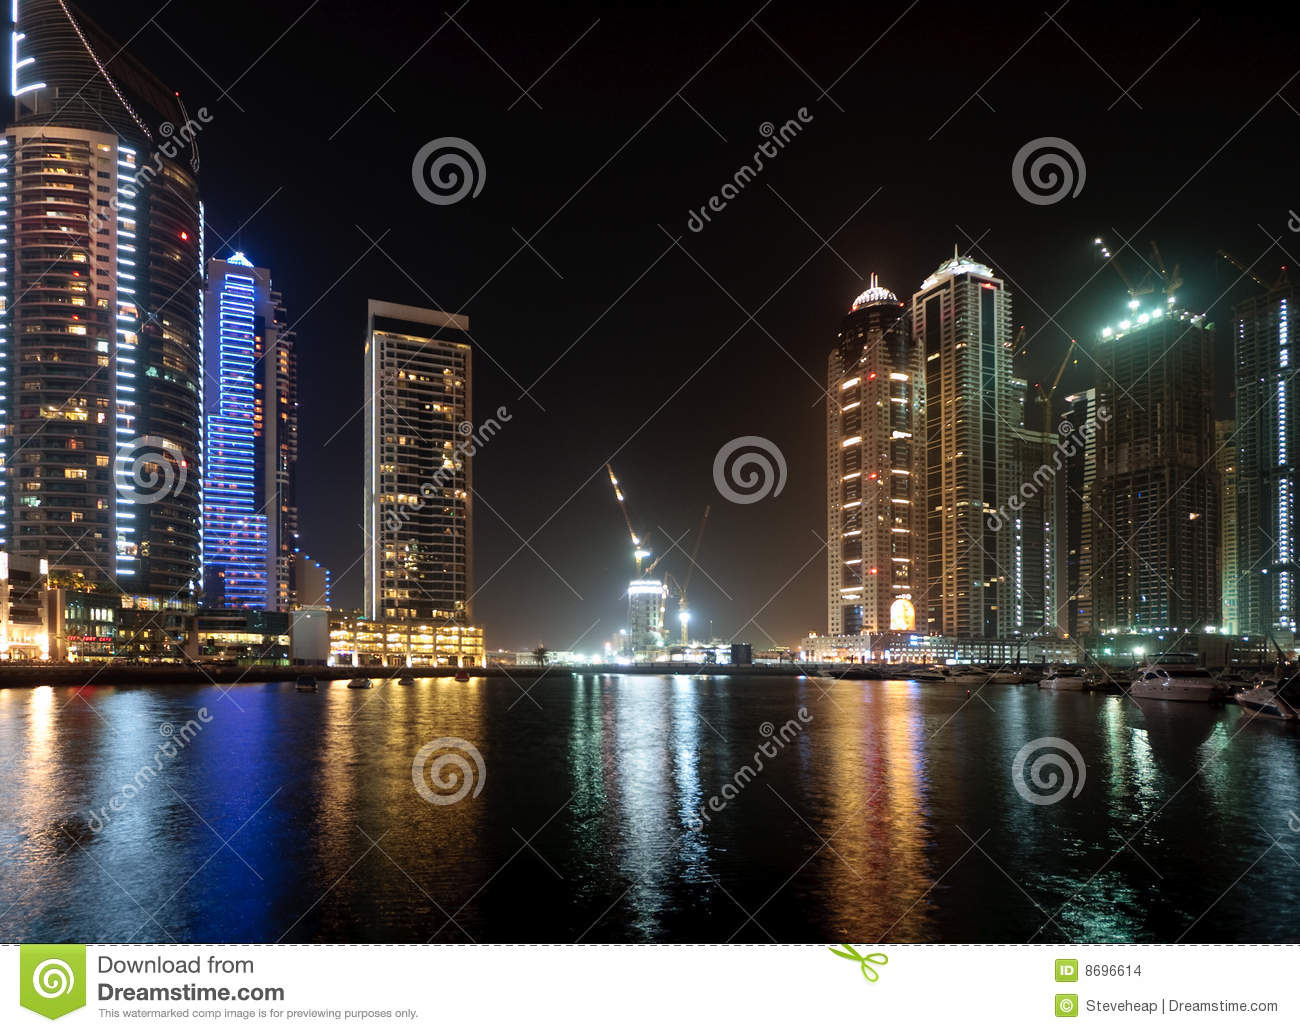 Marina in Dubai at night